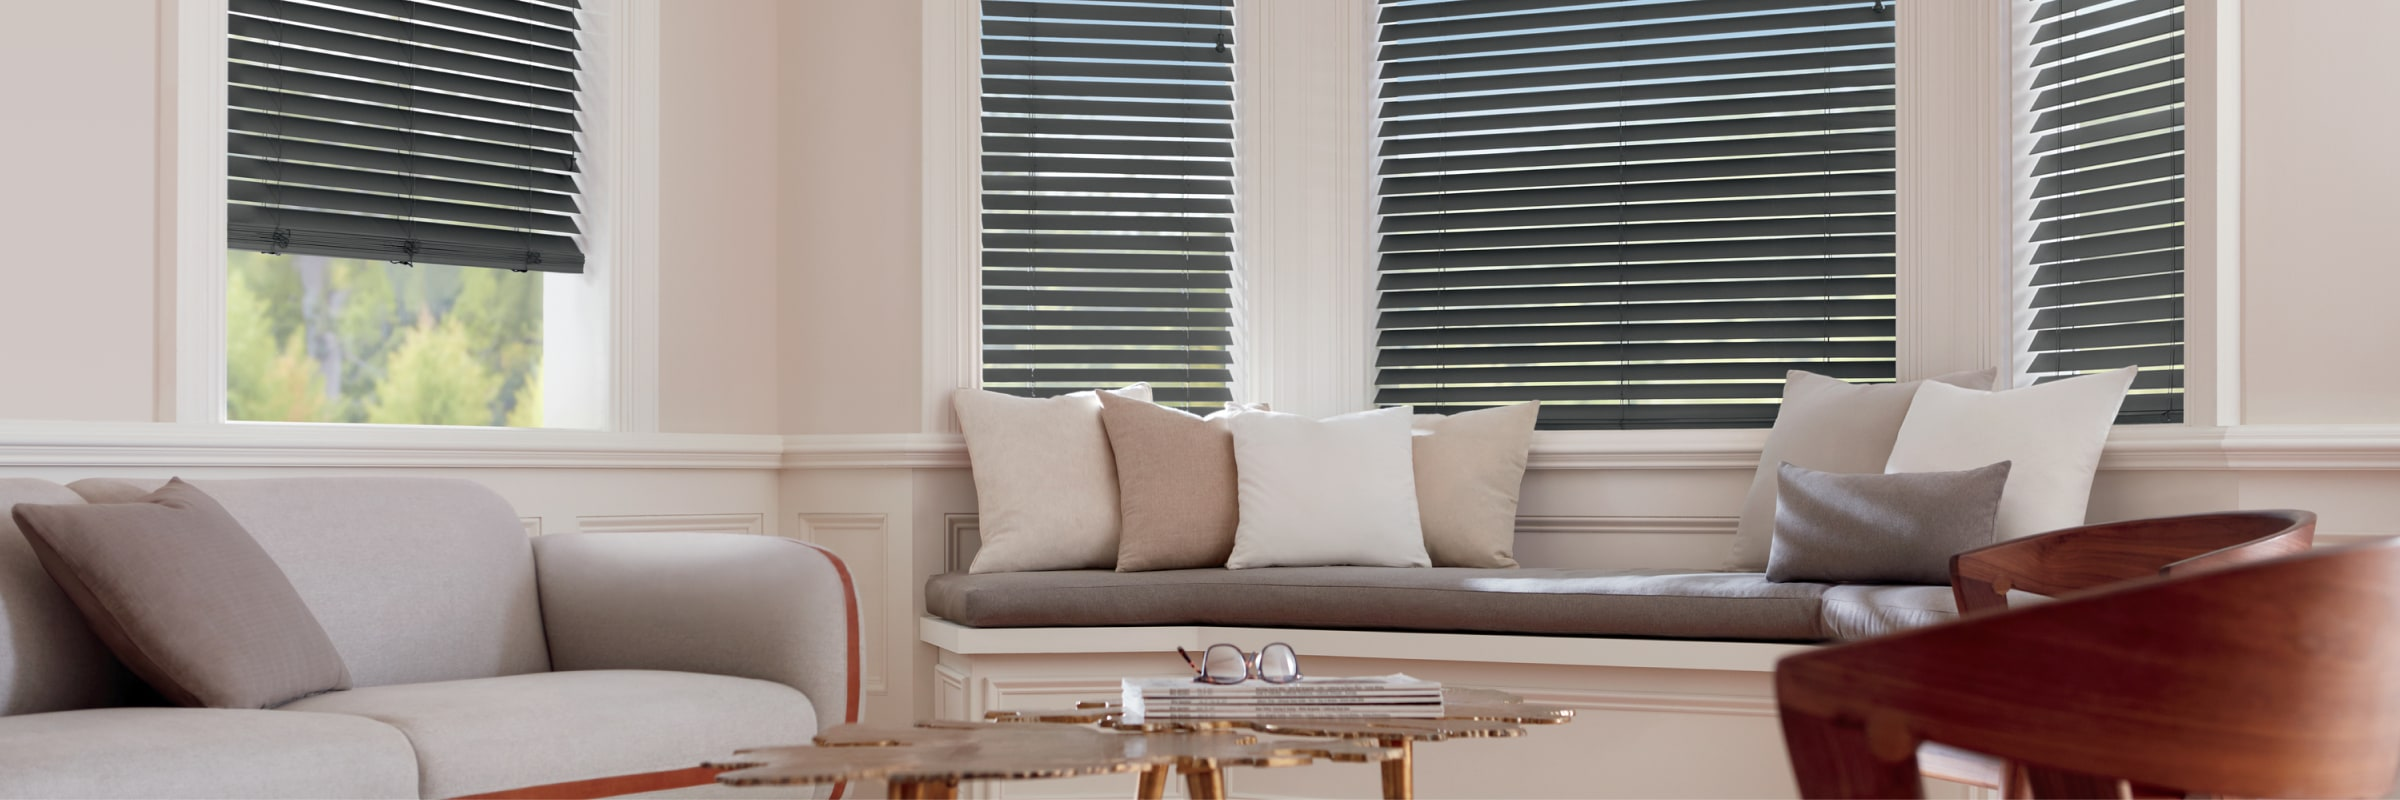 Wooden blinds in Matte Basswood Nightingale - Parkland